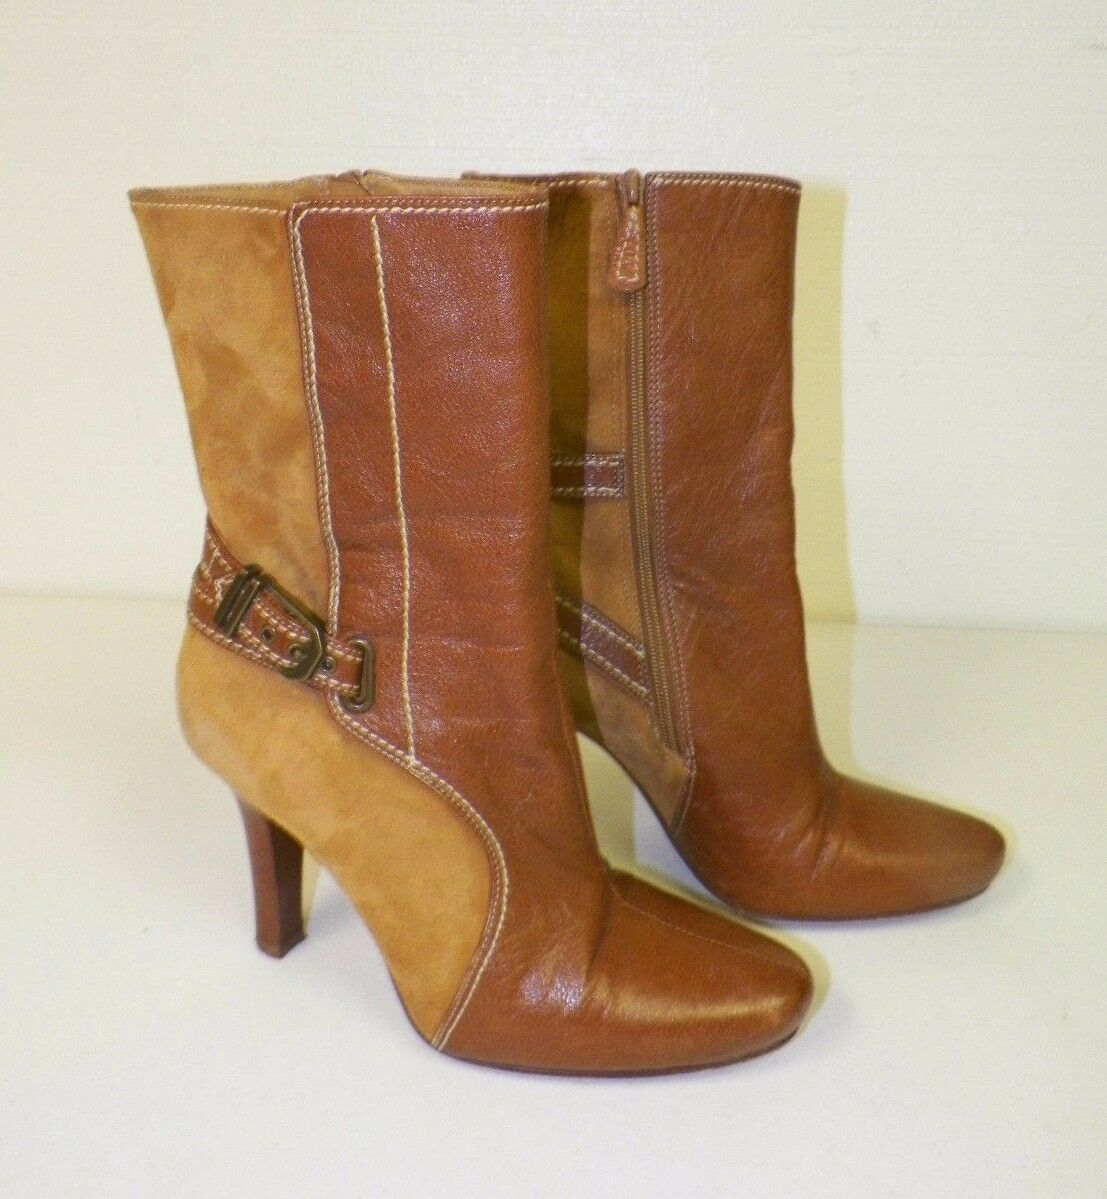 Damenschuhe'S COLE HAAN BROWN LEATHER FASHION ANKLE BOOTS SZ 5 1/2 GOOD USED COND